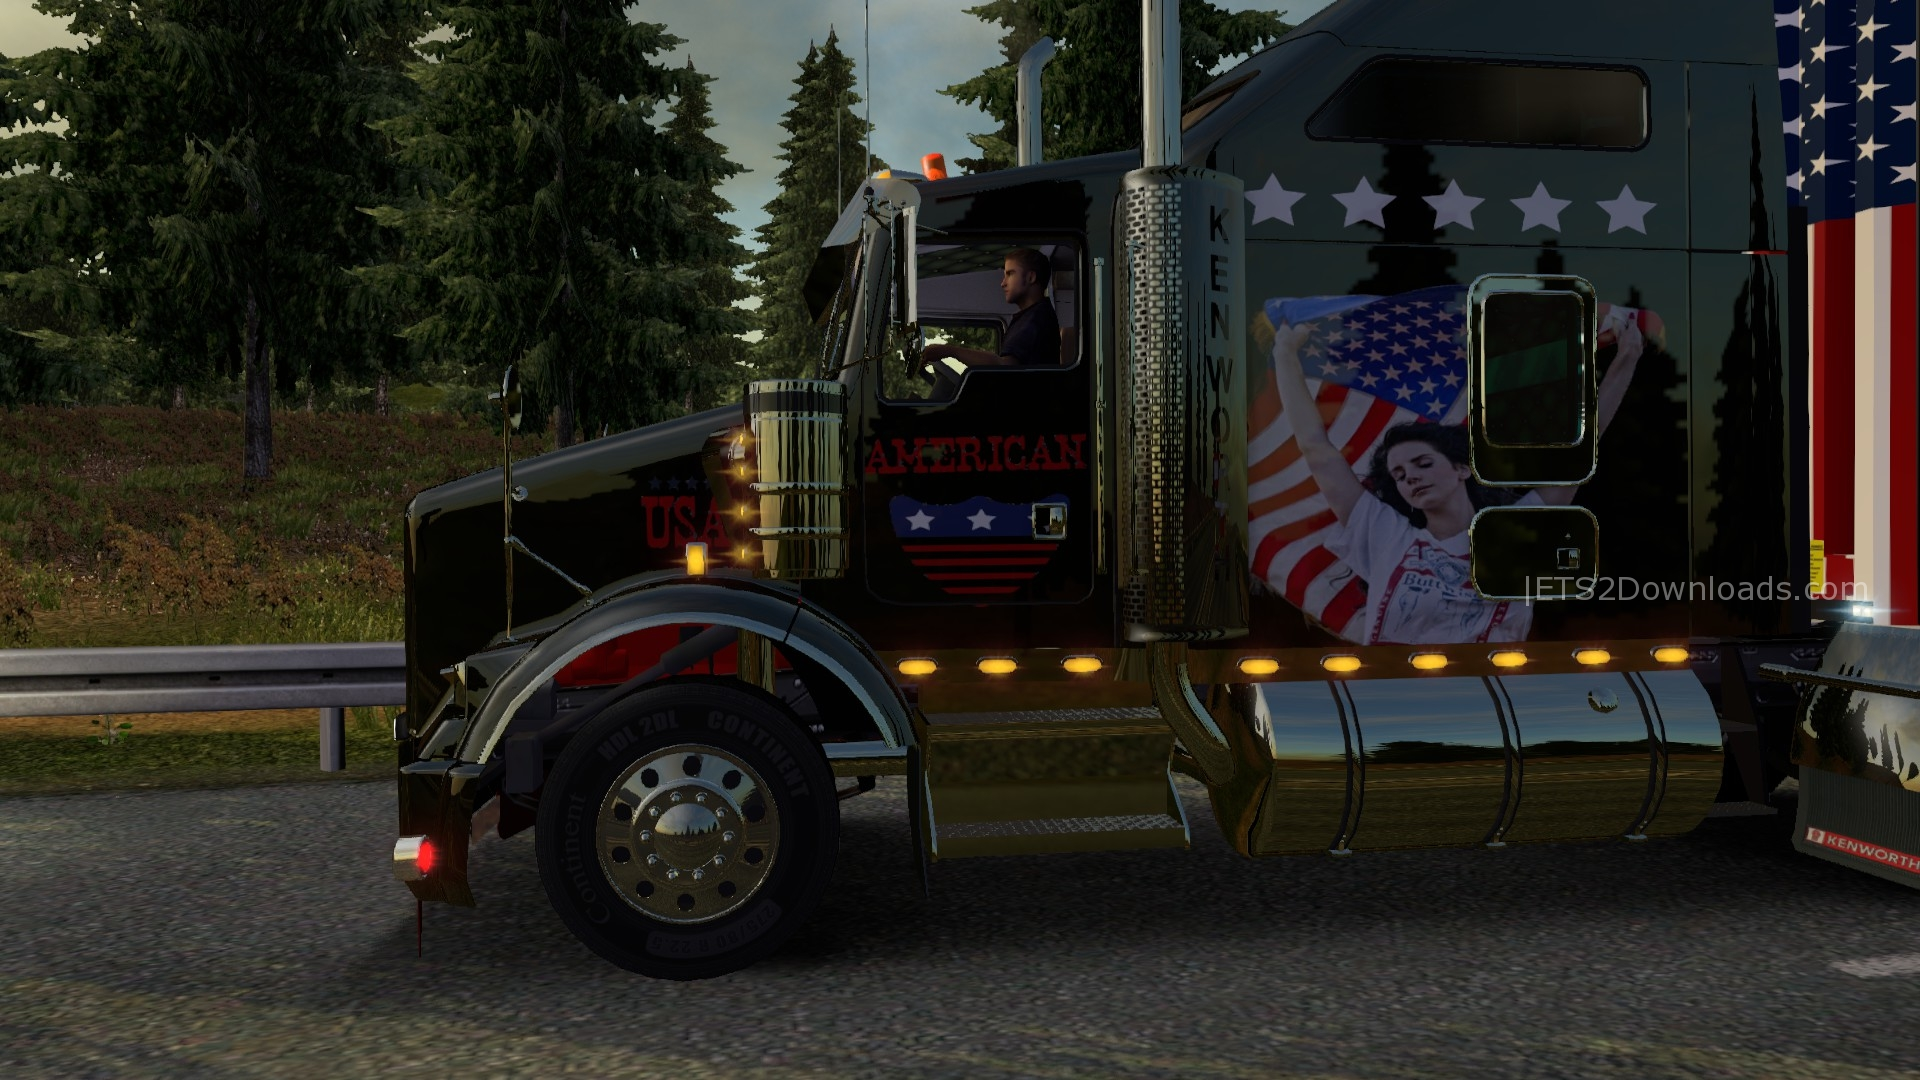 usa-metallic-skin-for-kenworth-t800-3